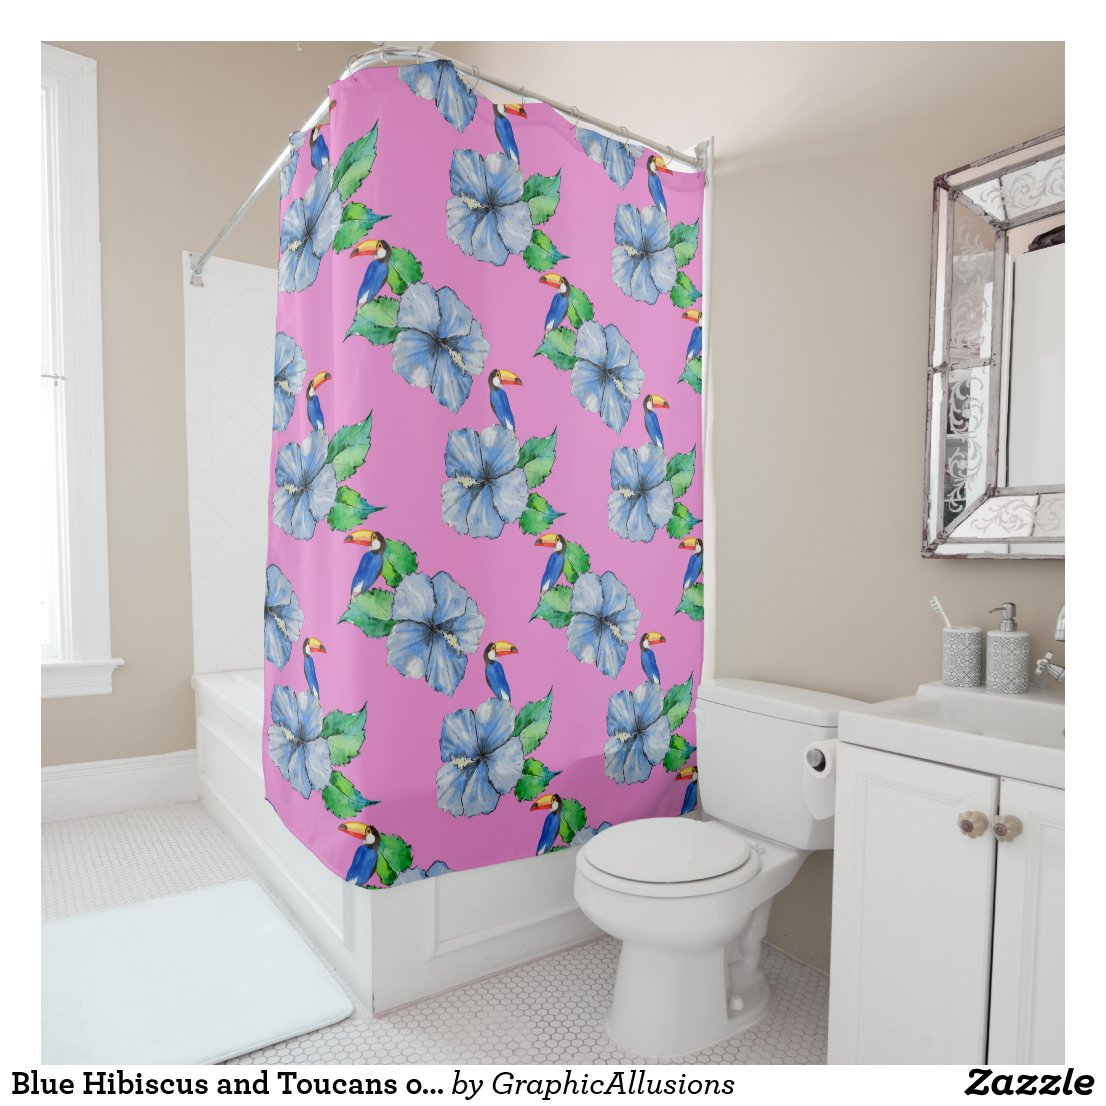 Blue Hibiscus and Toucans on Pink Shower Curtain